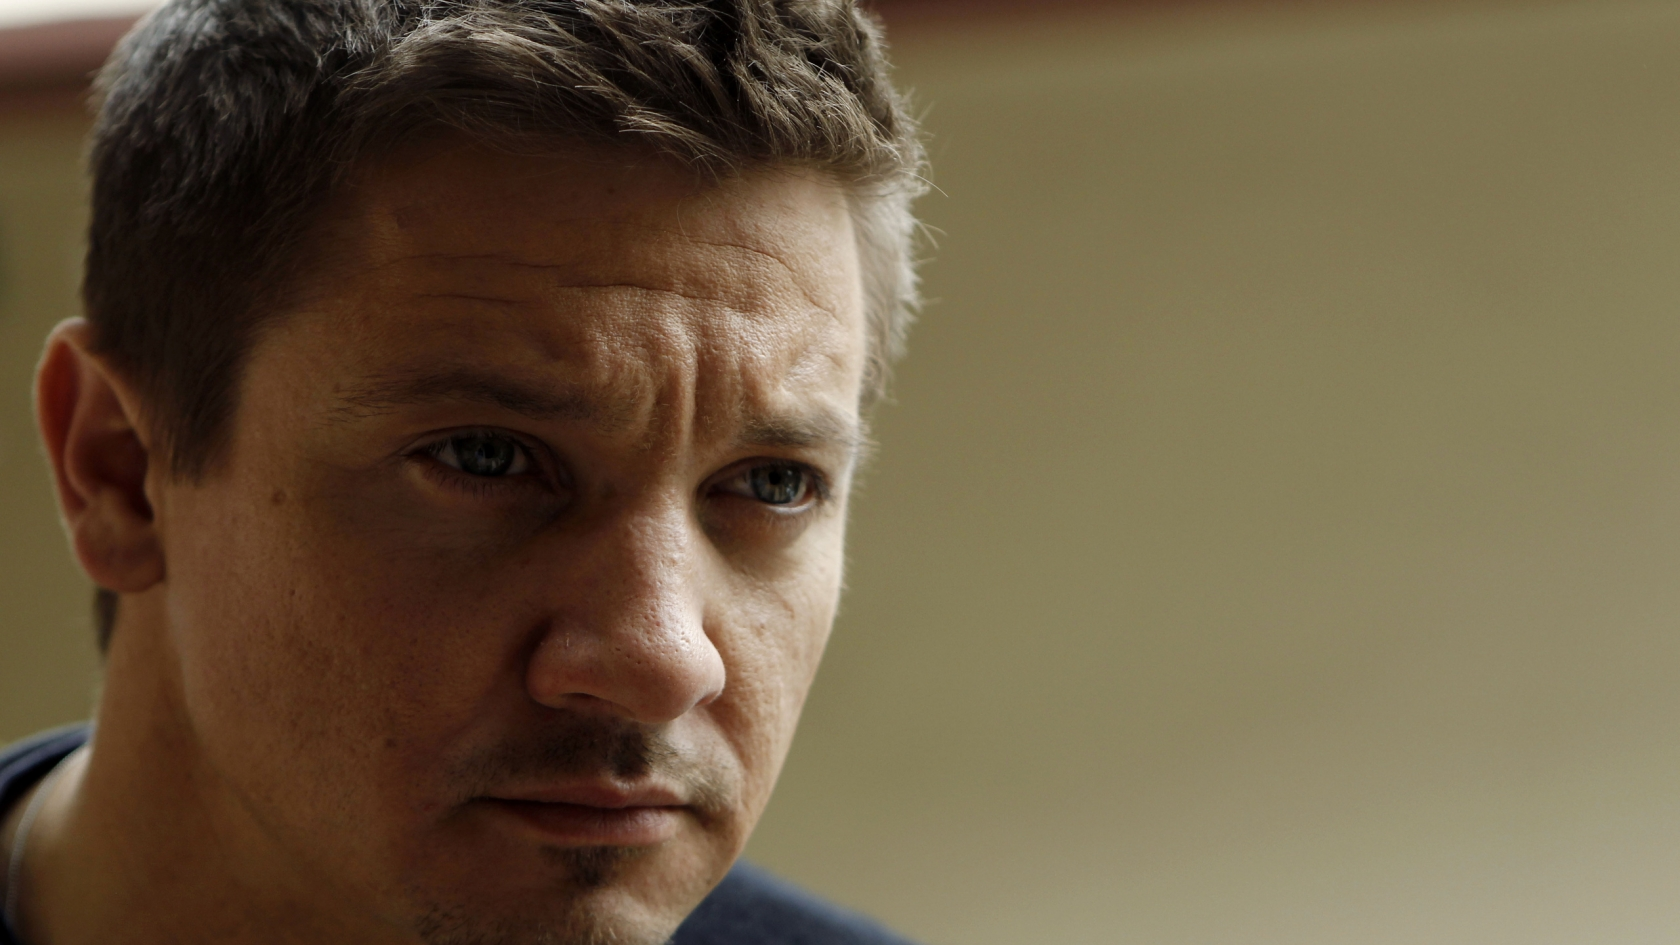 Jeremy Renner Close Up for 1680 x 945 HDTV resolution